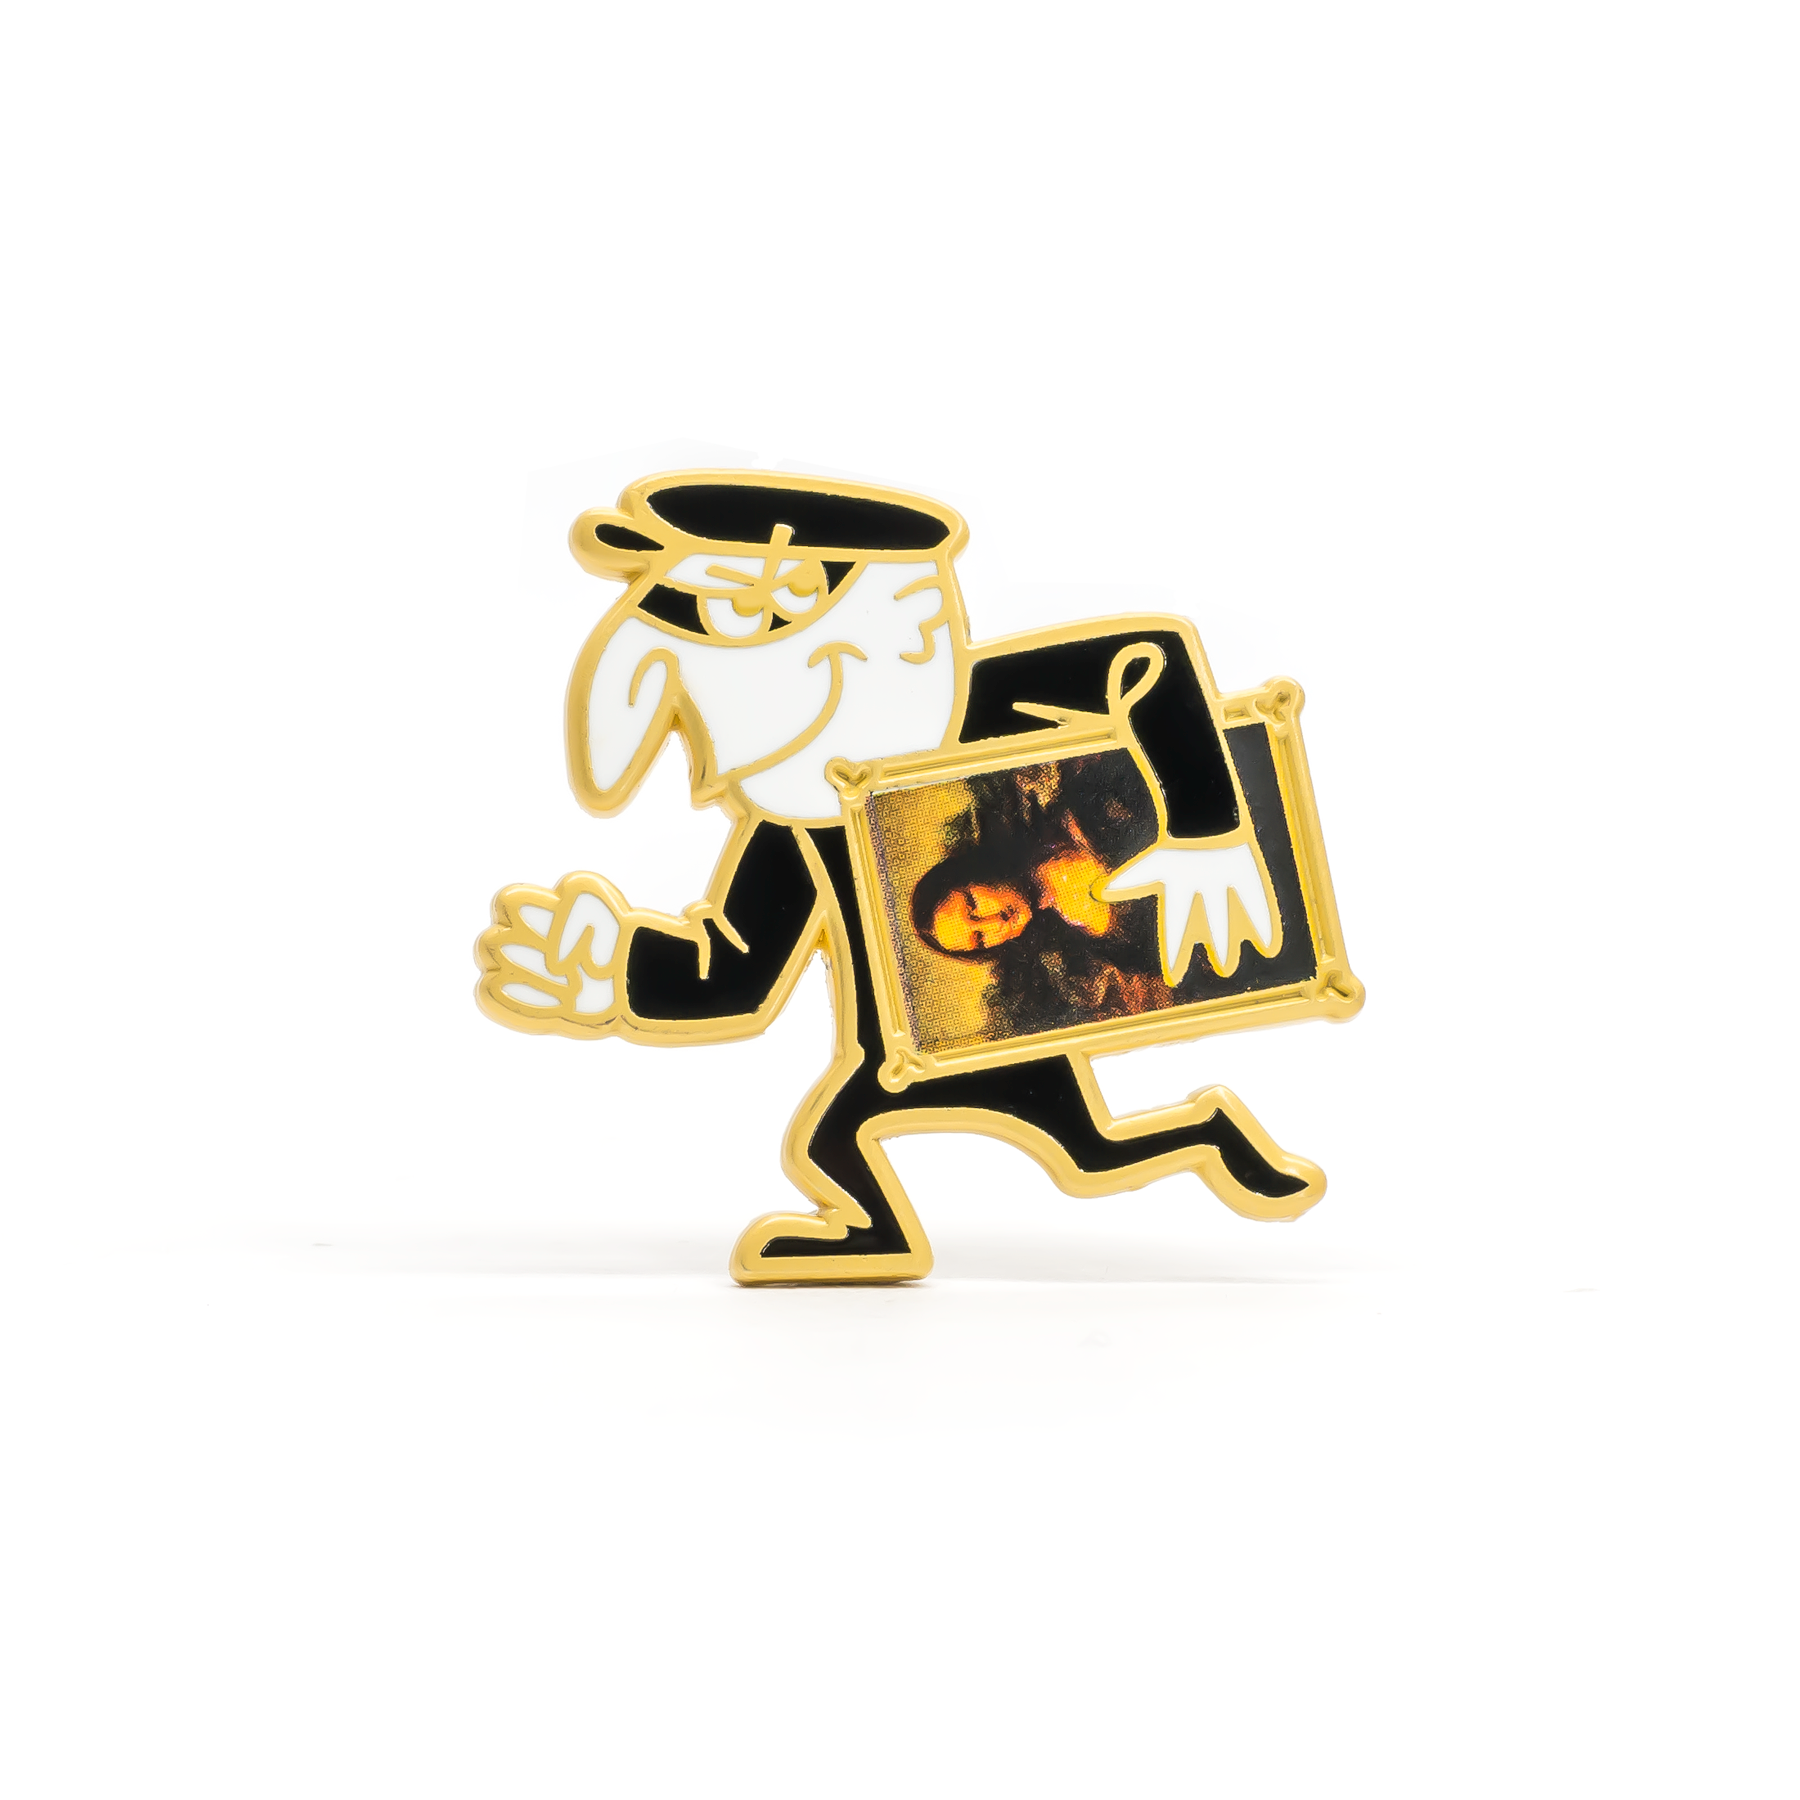 Art Thief enamel pin